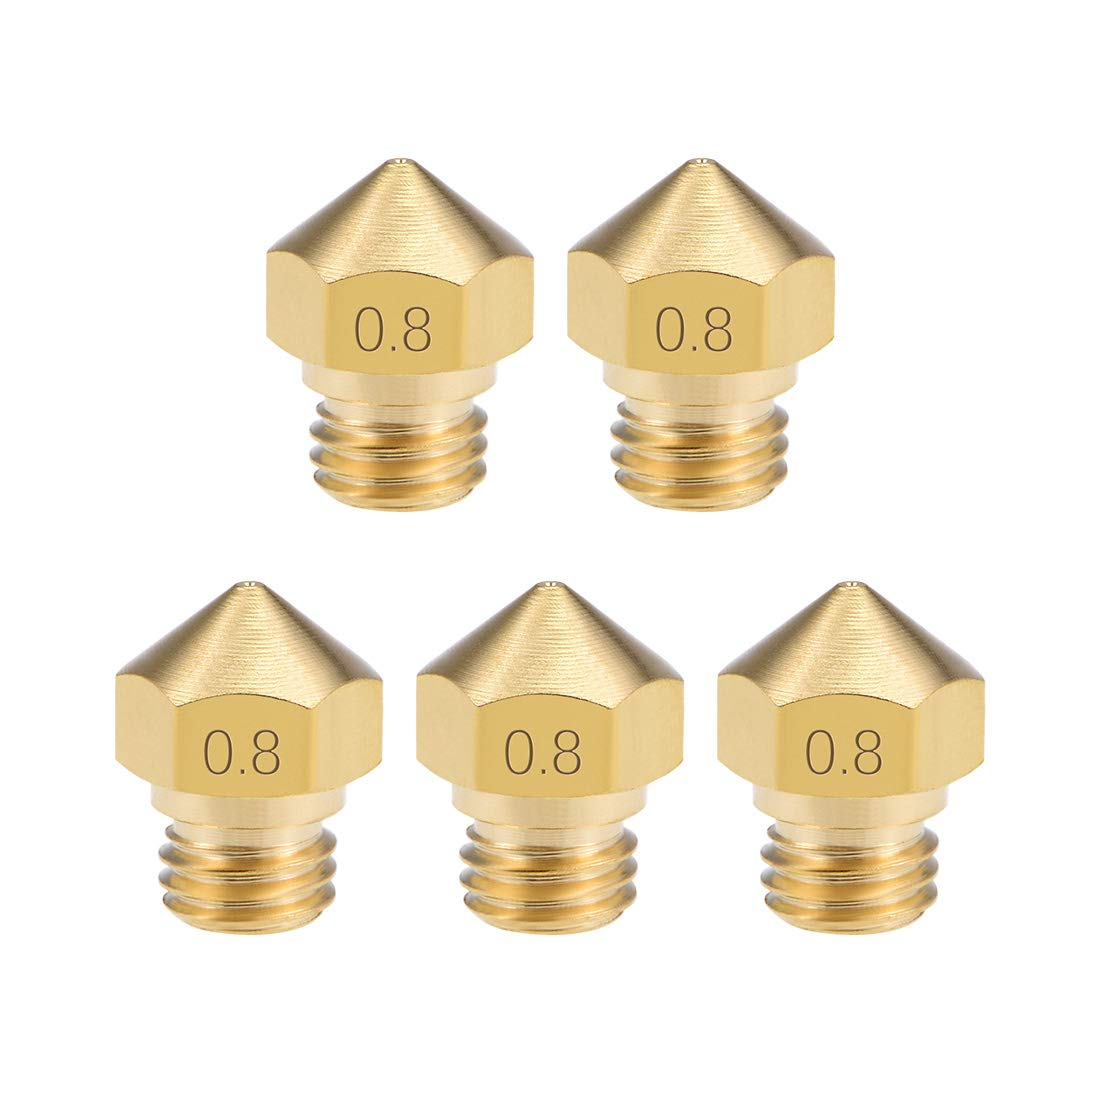 Stainless Steel 4pcs uxcell 0.6mm 3D Printer Nozzle Head M6 Thread Replacement for V5 V6 1.75mm Extruder Print